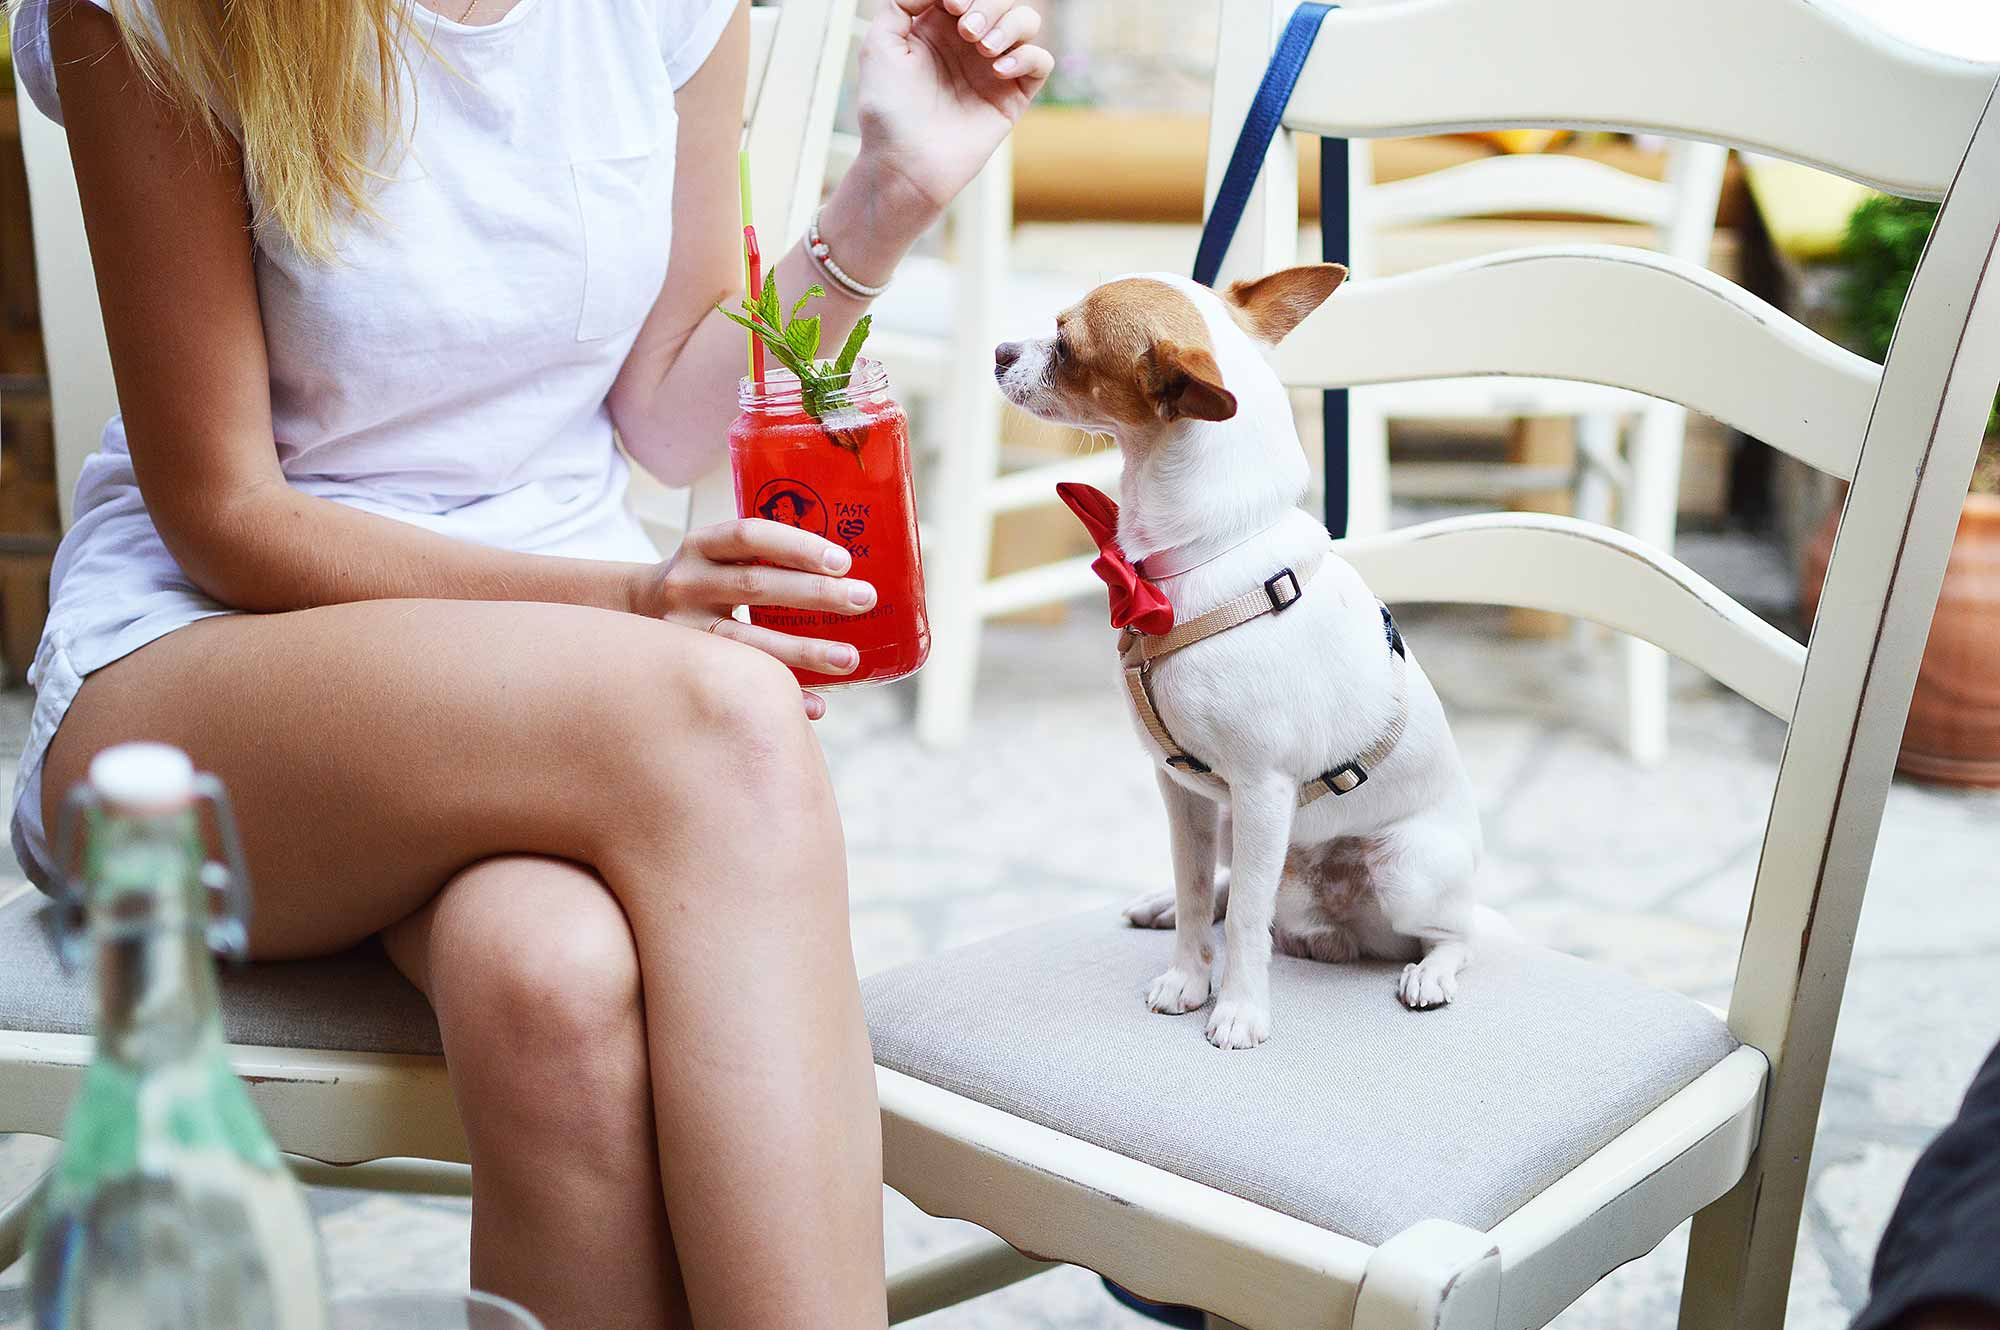 Woman holding a cocktail sitting beside a cute white and brown dog